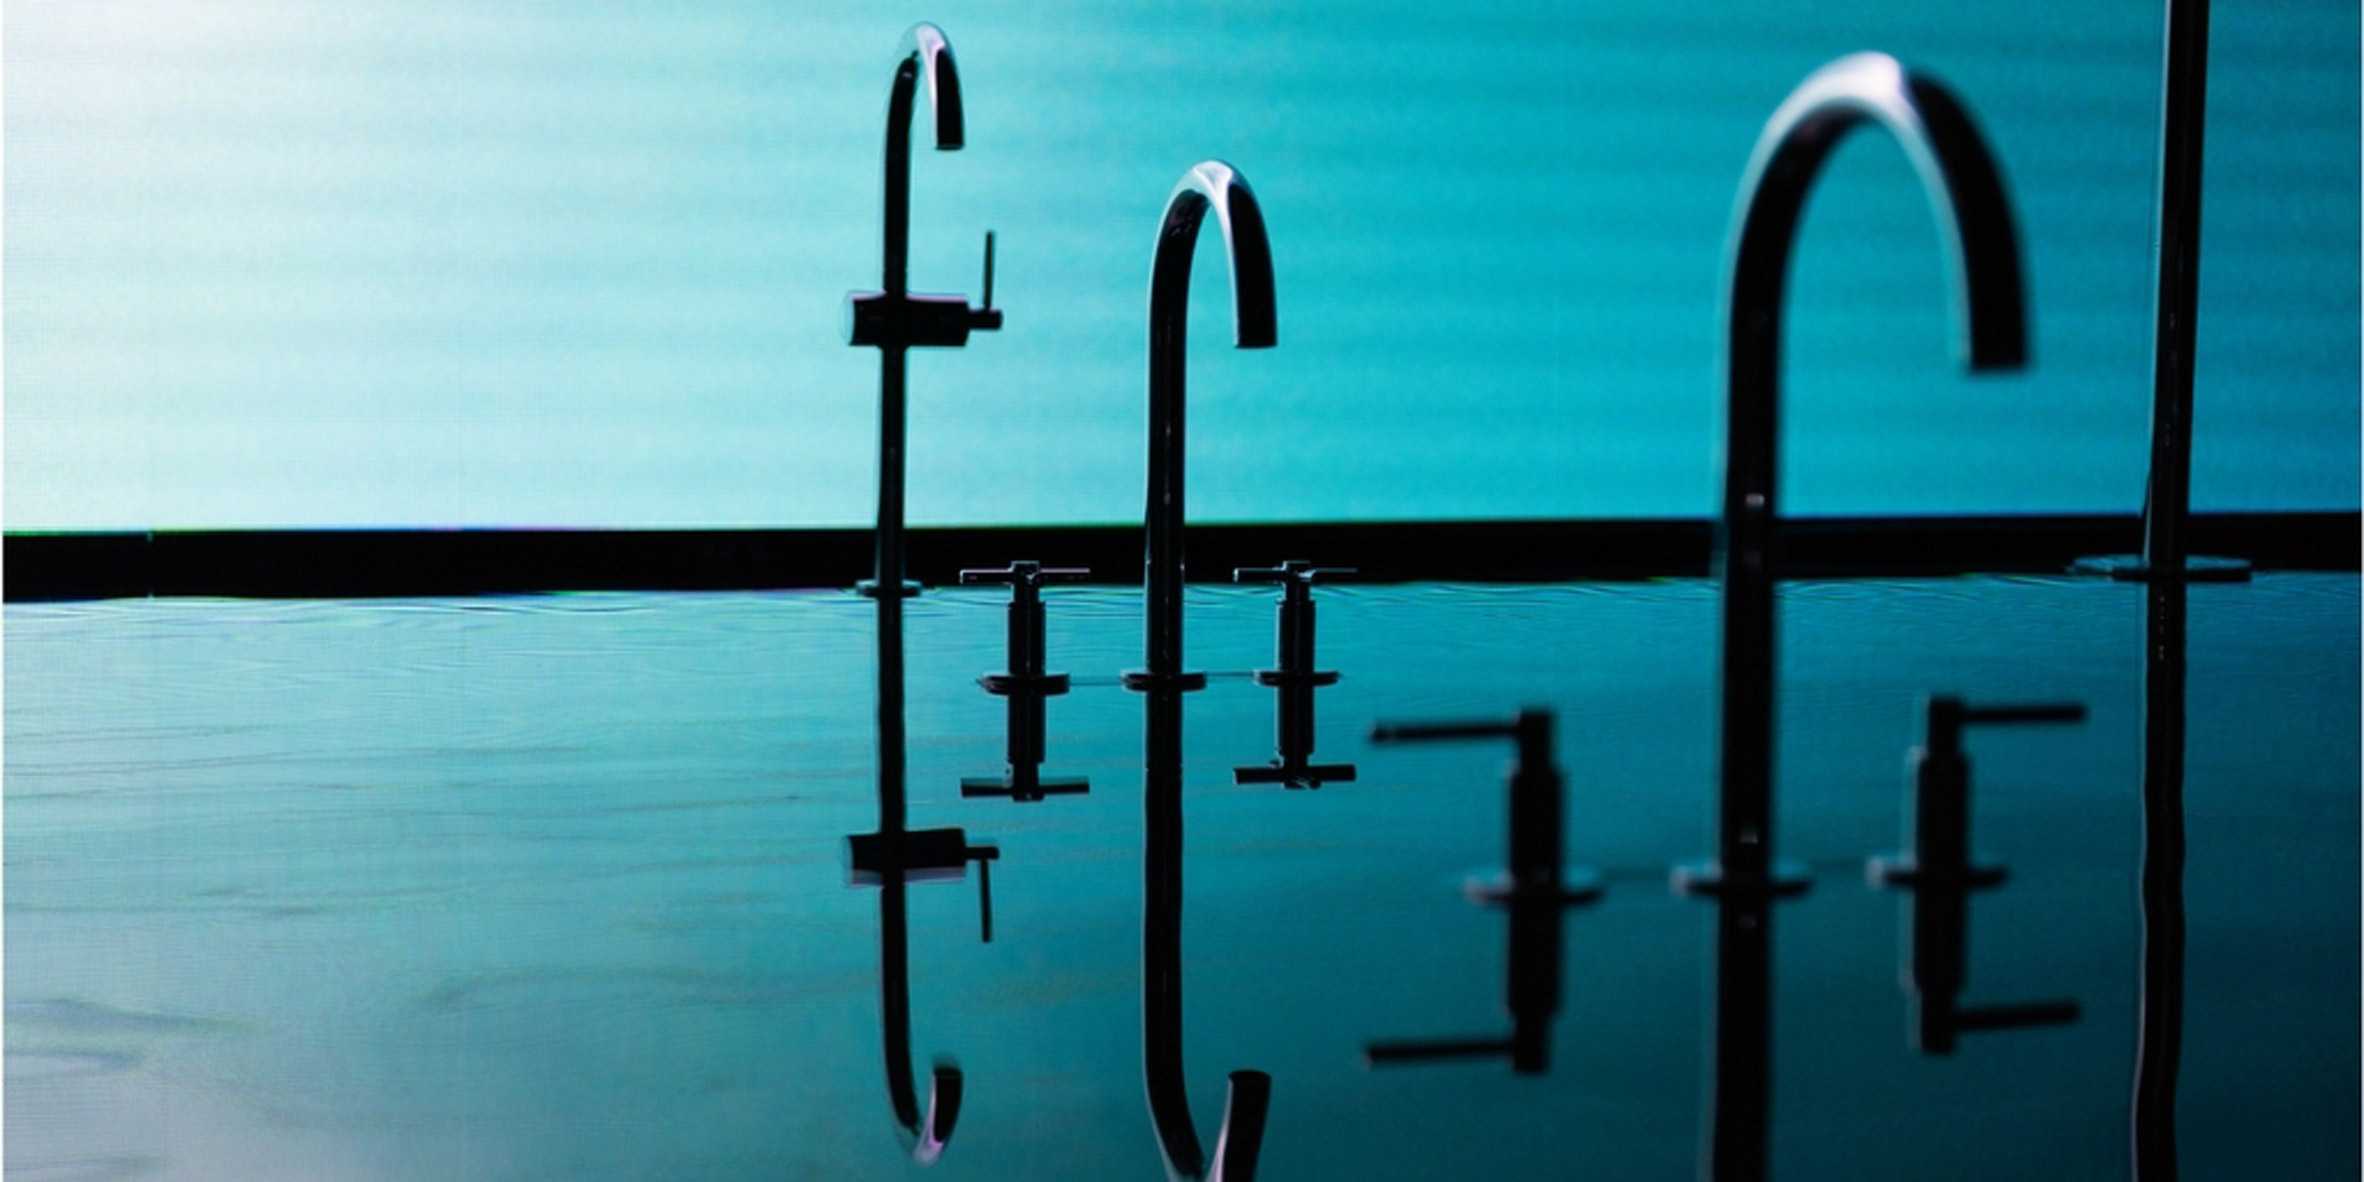 Dorable Grohe Minta Faucet Sketch - Faucet Collections - thoughtfire ...